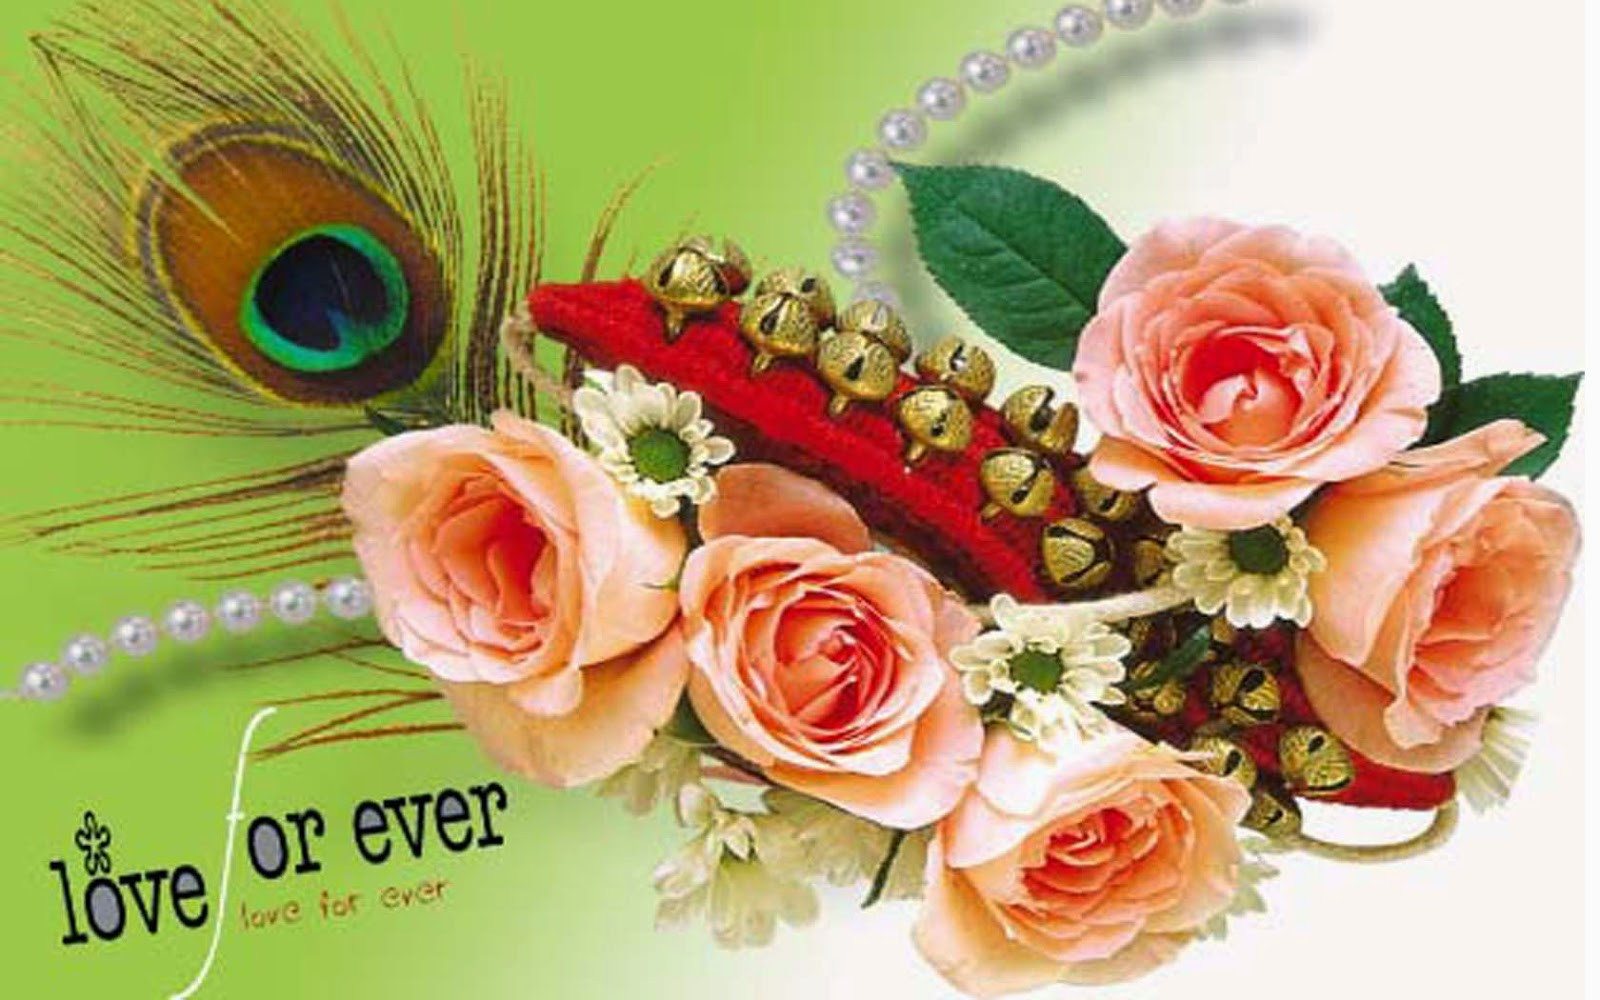 love for ever image